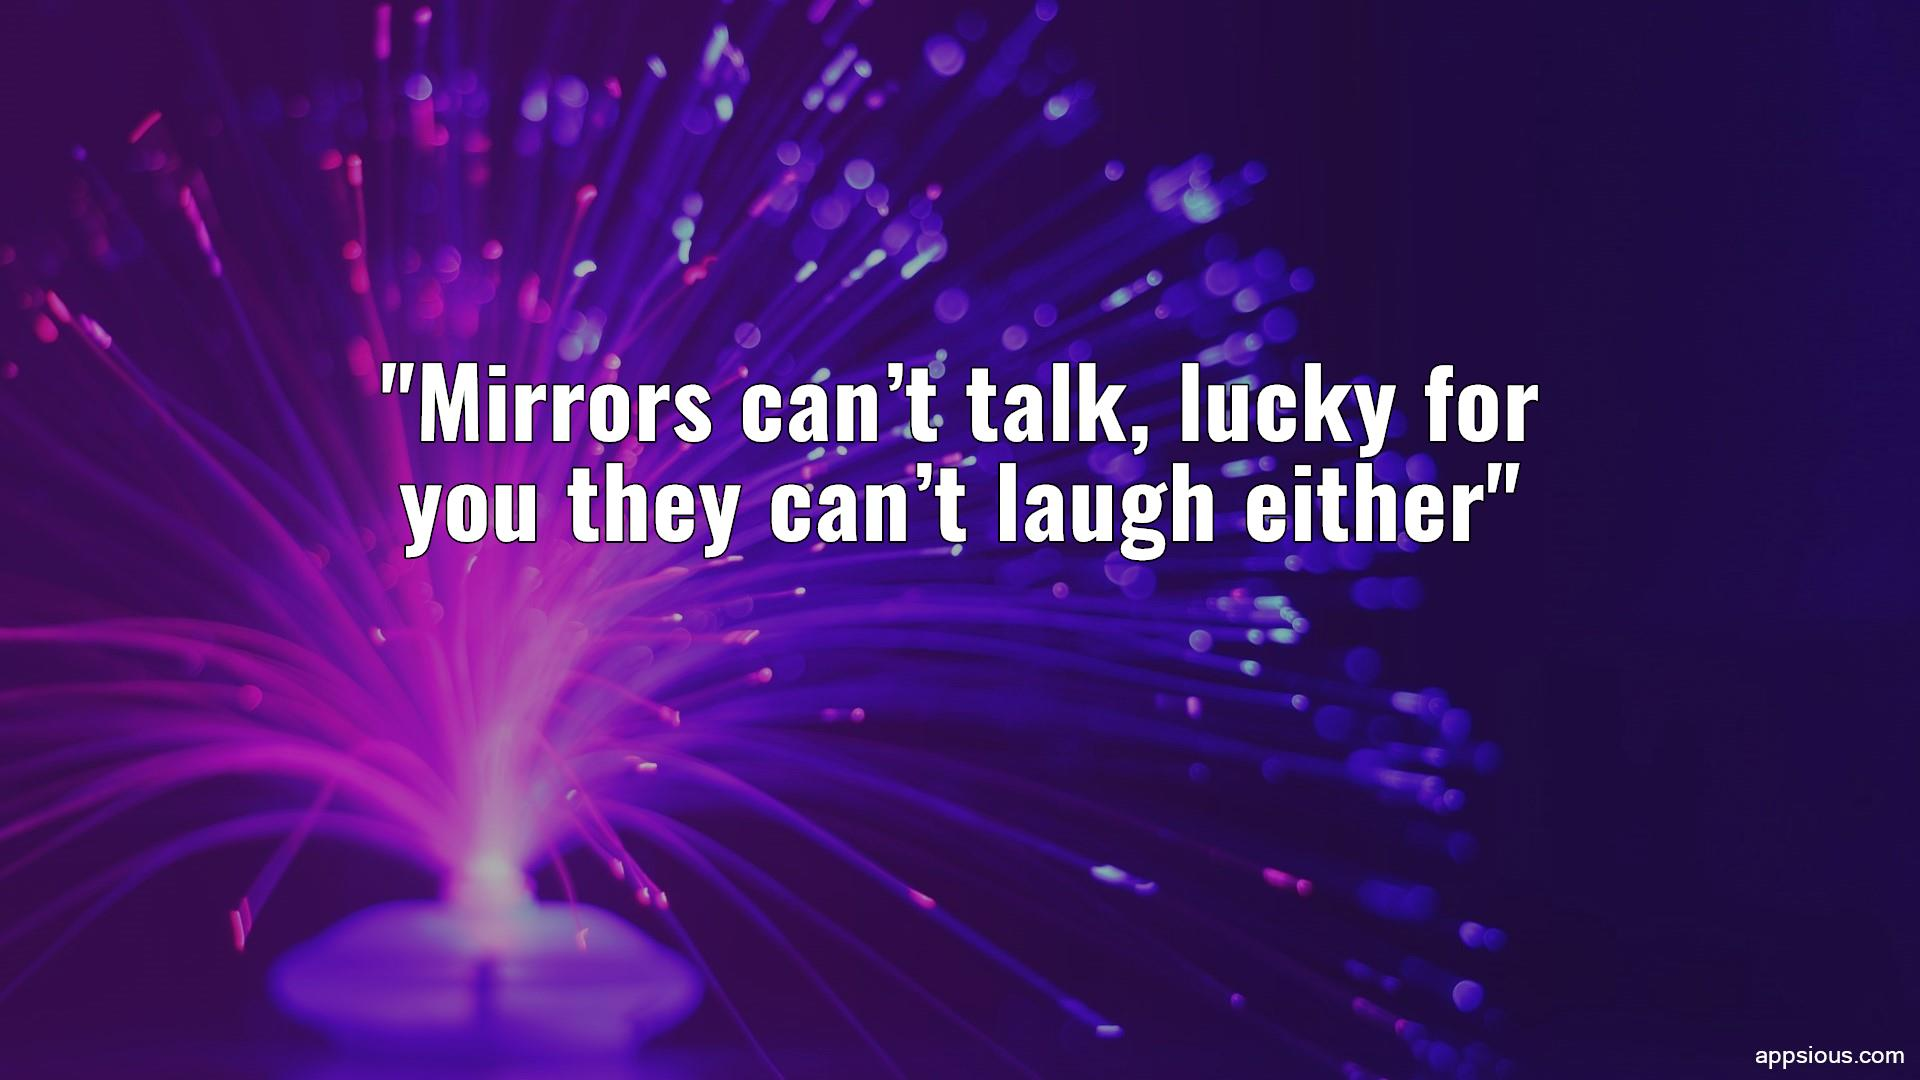 Mirrors can't talk, lucky for you they can't laugh either